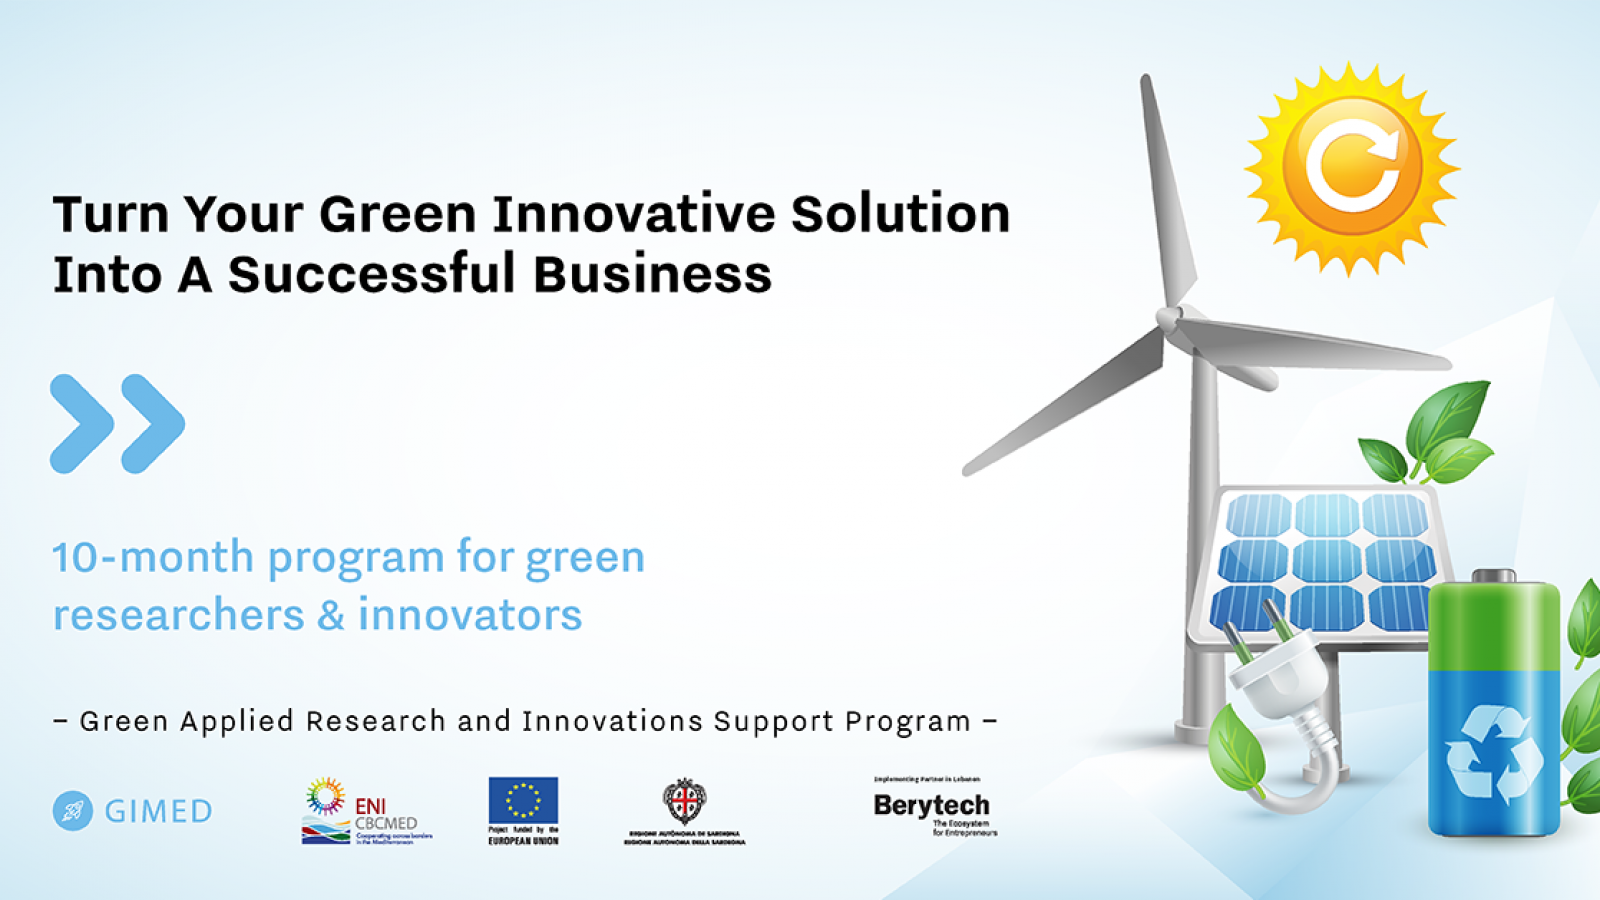 Lebanon: EU-funded GIMED launches the Green Applied Research And Innovations Support Program